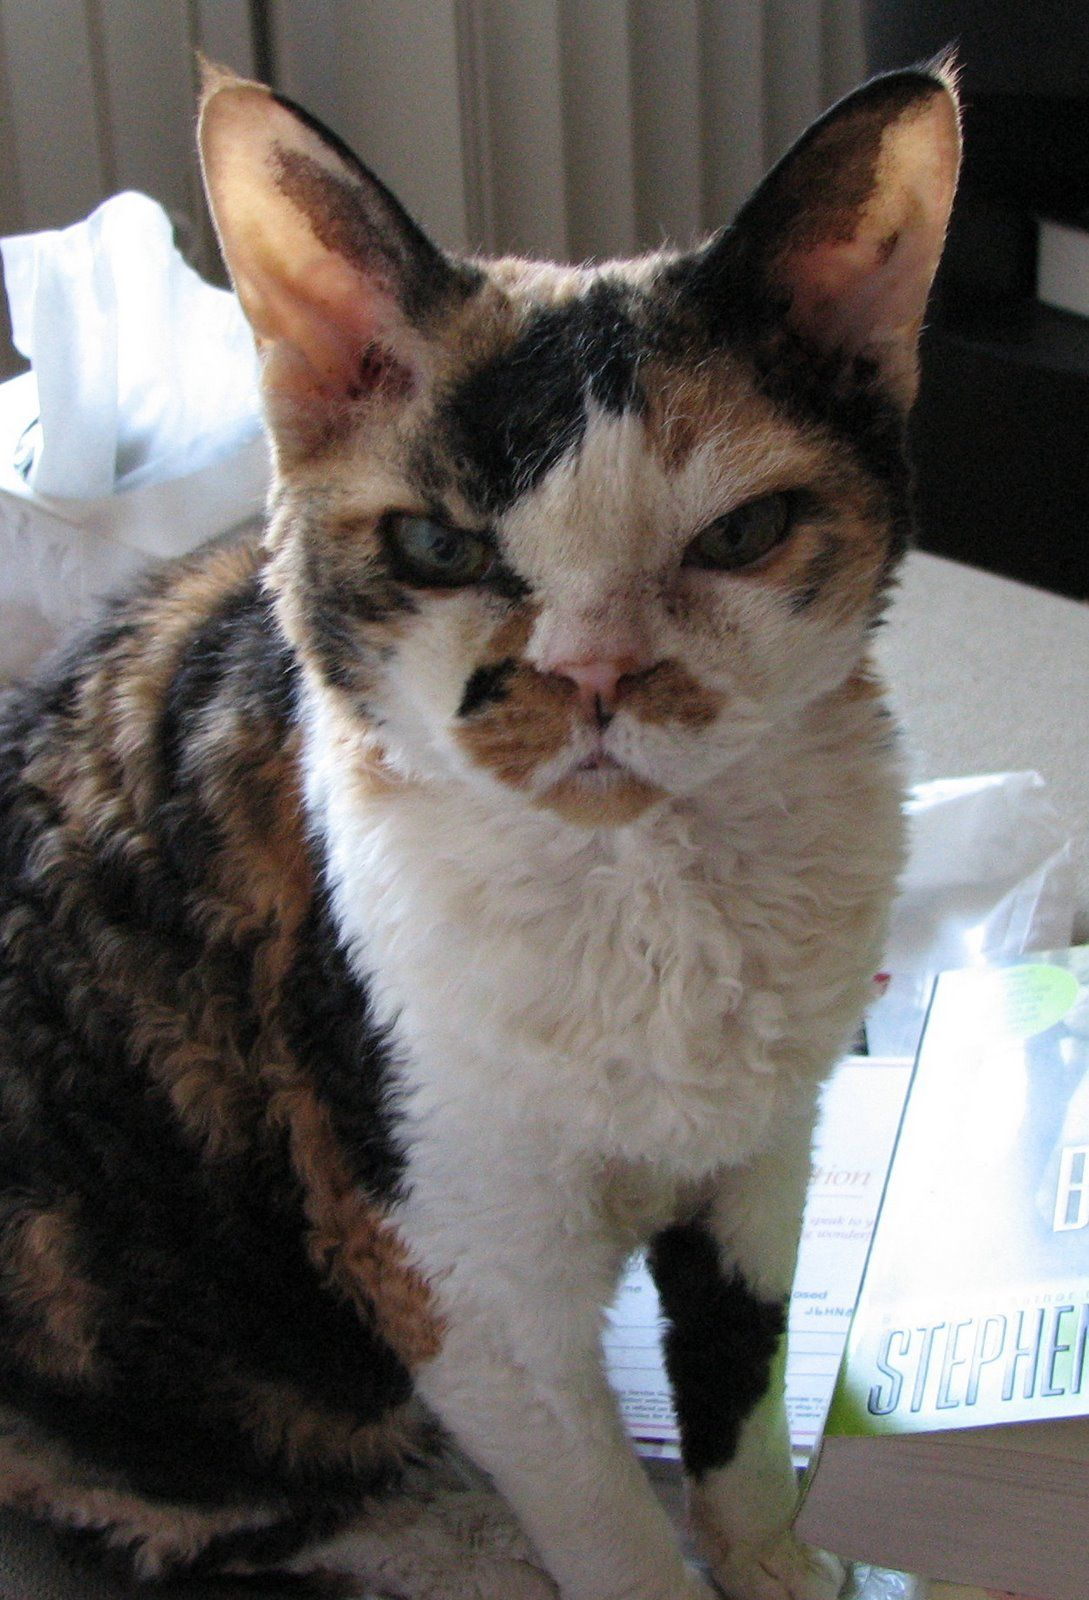 angrydevonrex.jpg devonrex Tops Tiny Cat Breeds at